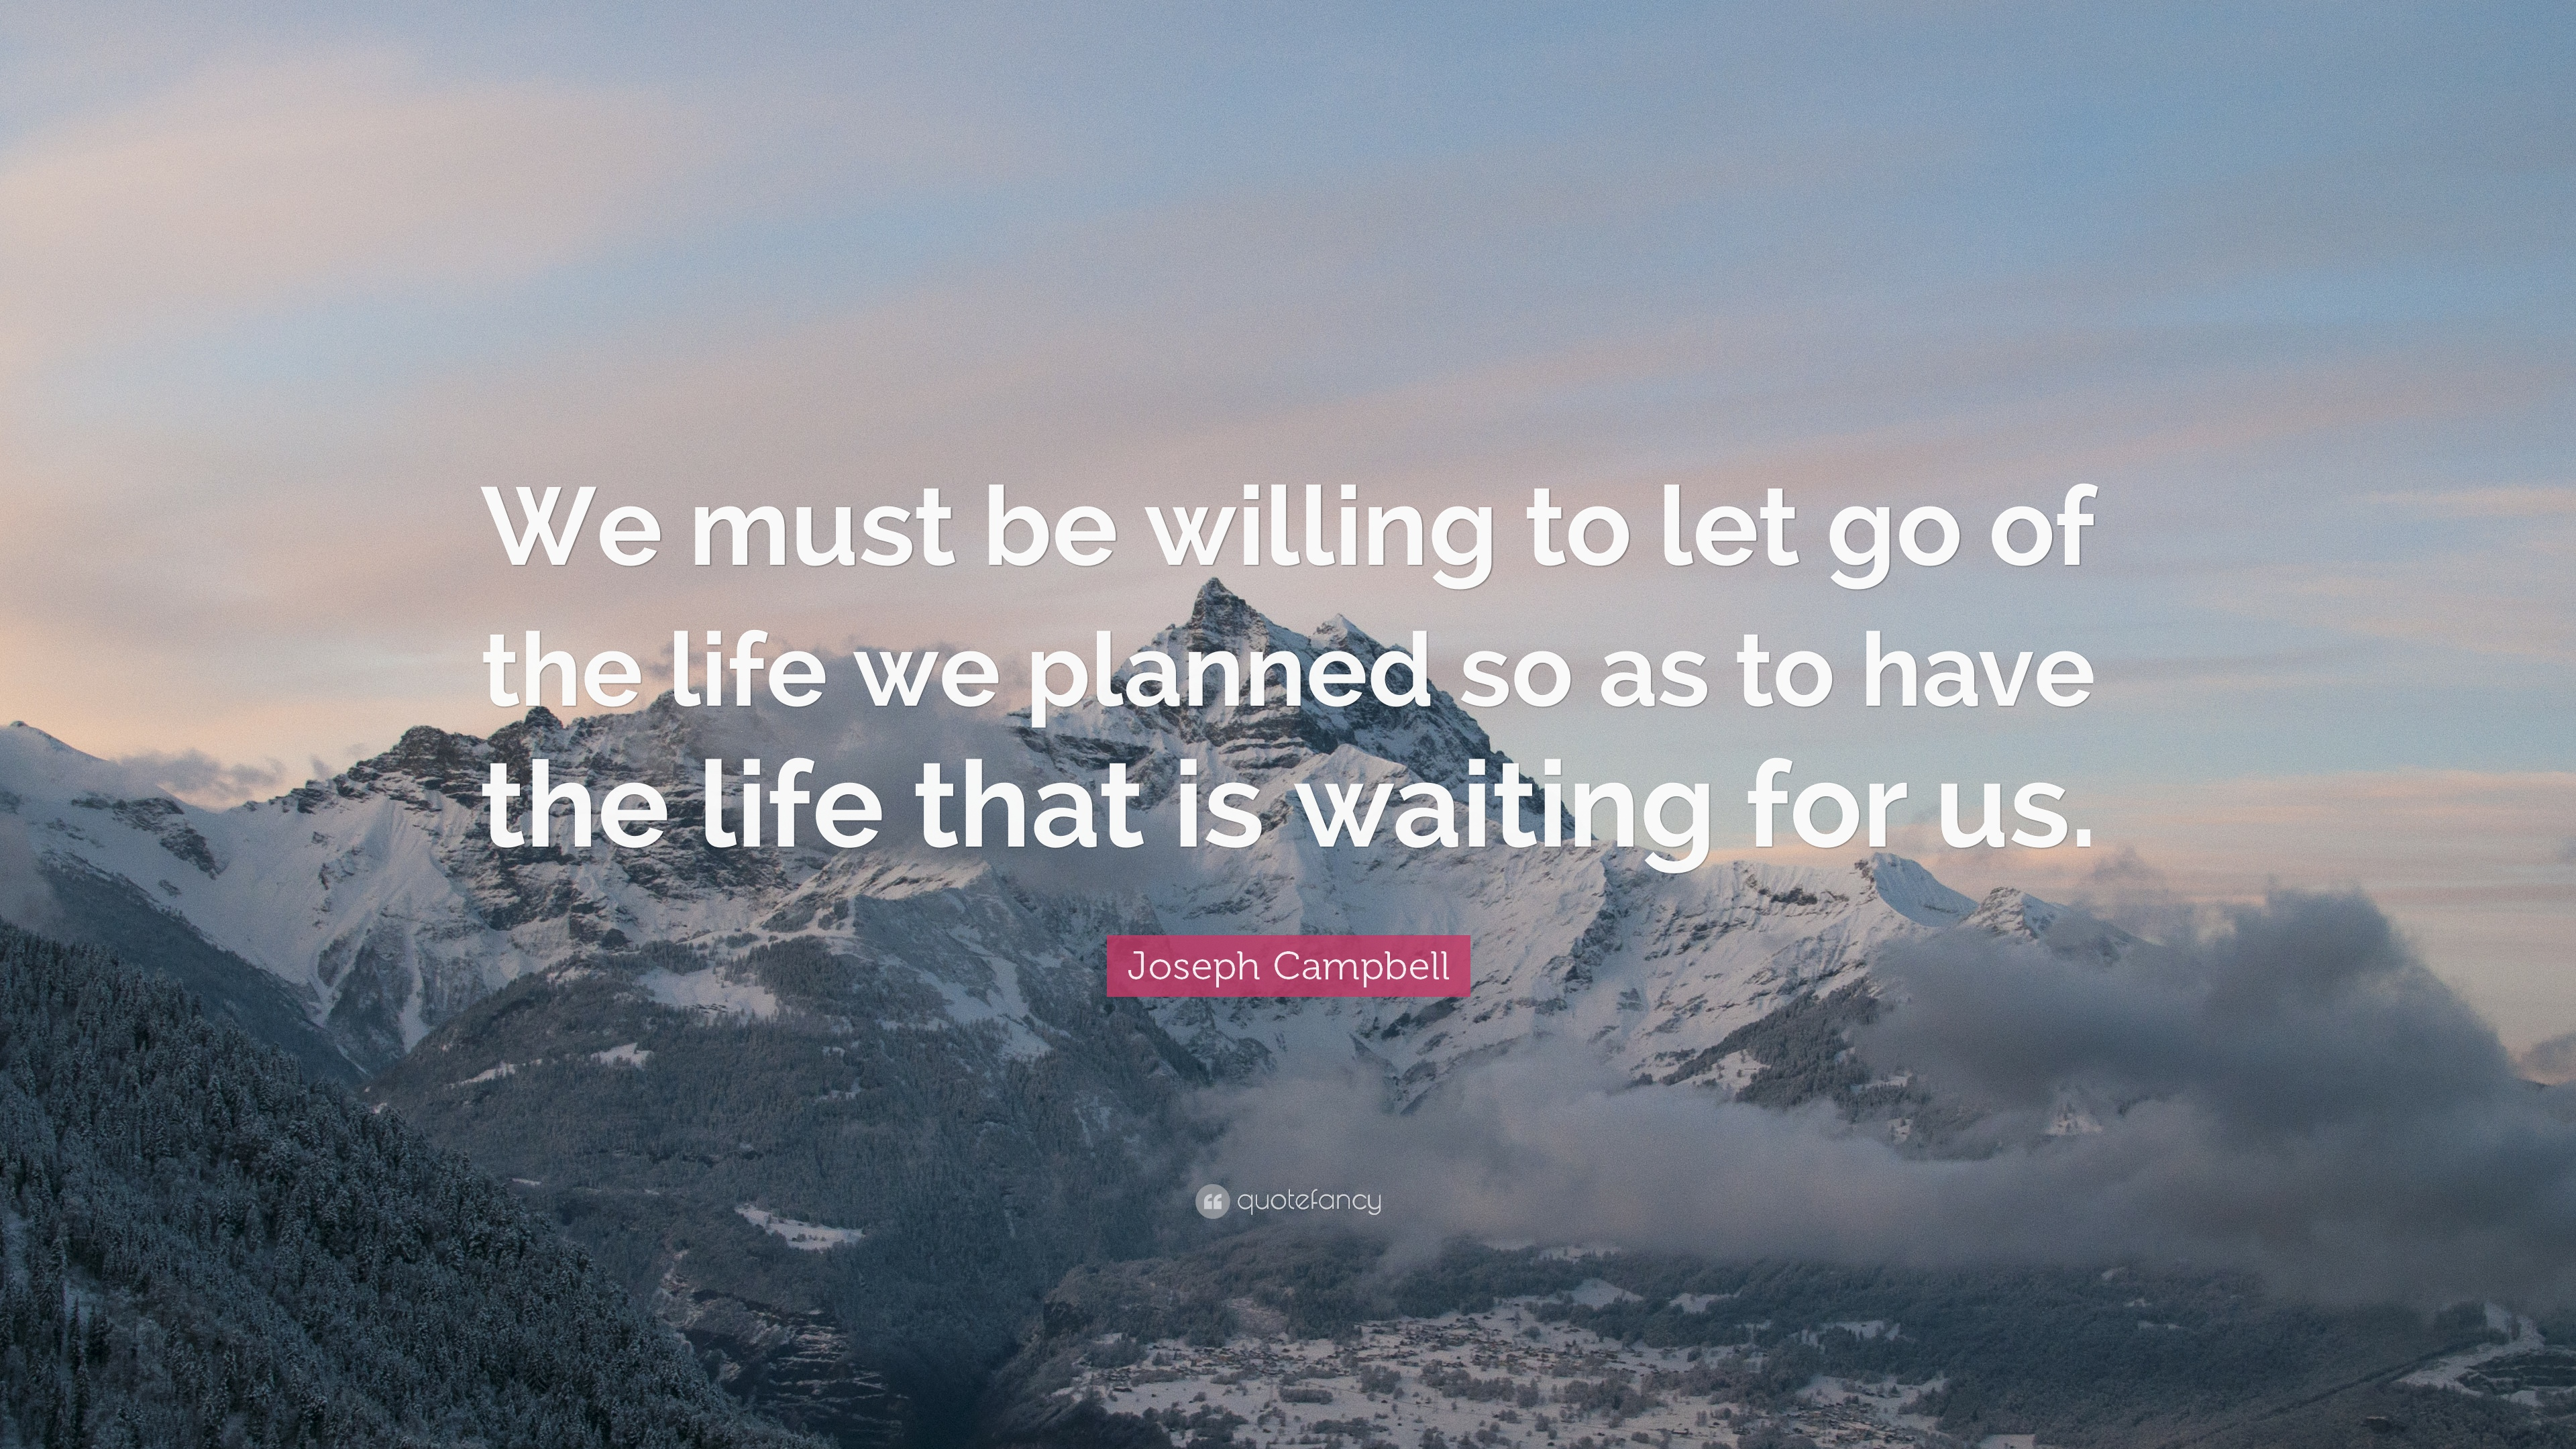 Good Joseph Campbell Quote: U201cWe Must Be Willing To Let Go Of The Life We Pictures Gallery